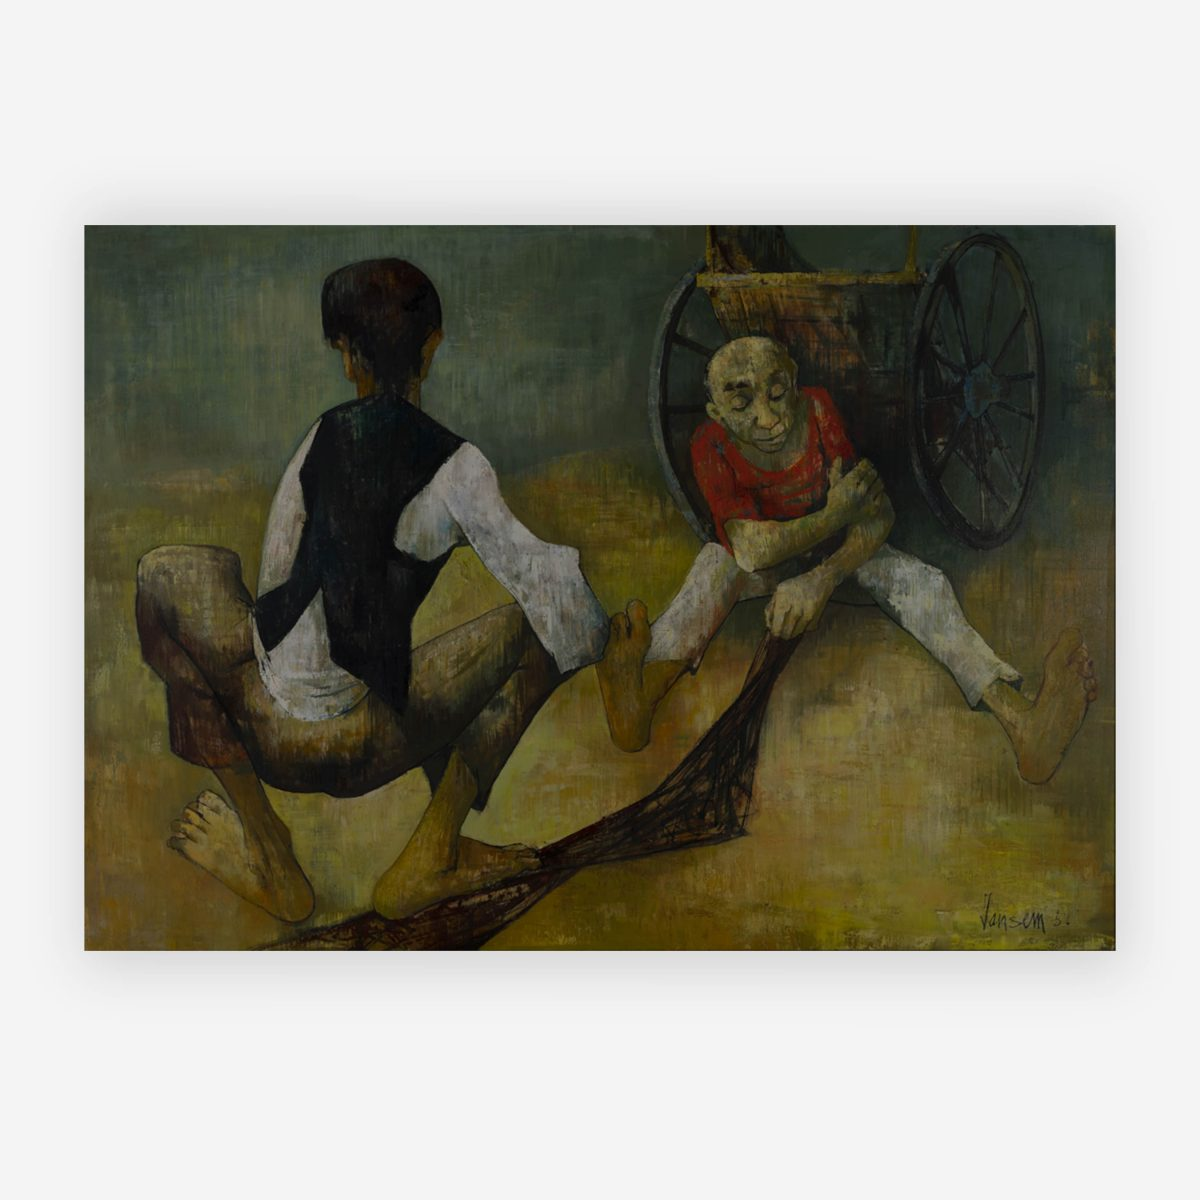 Jean Jansem - Two men and a cart